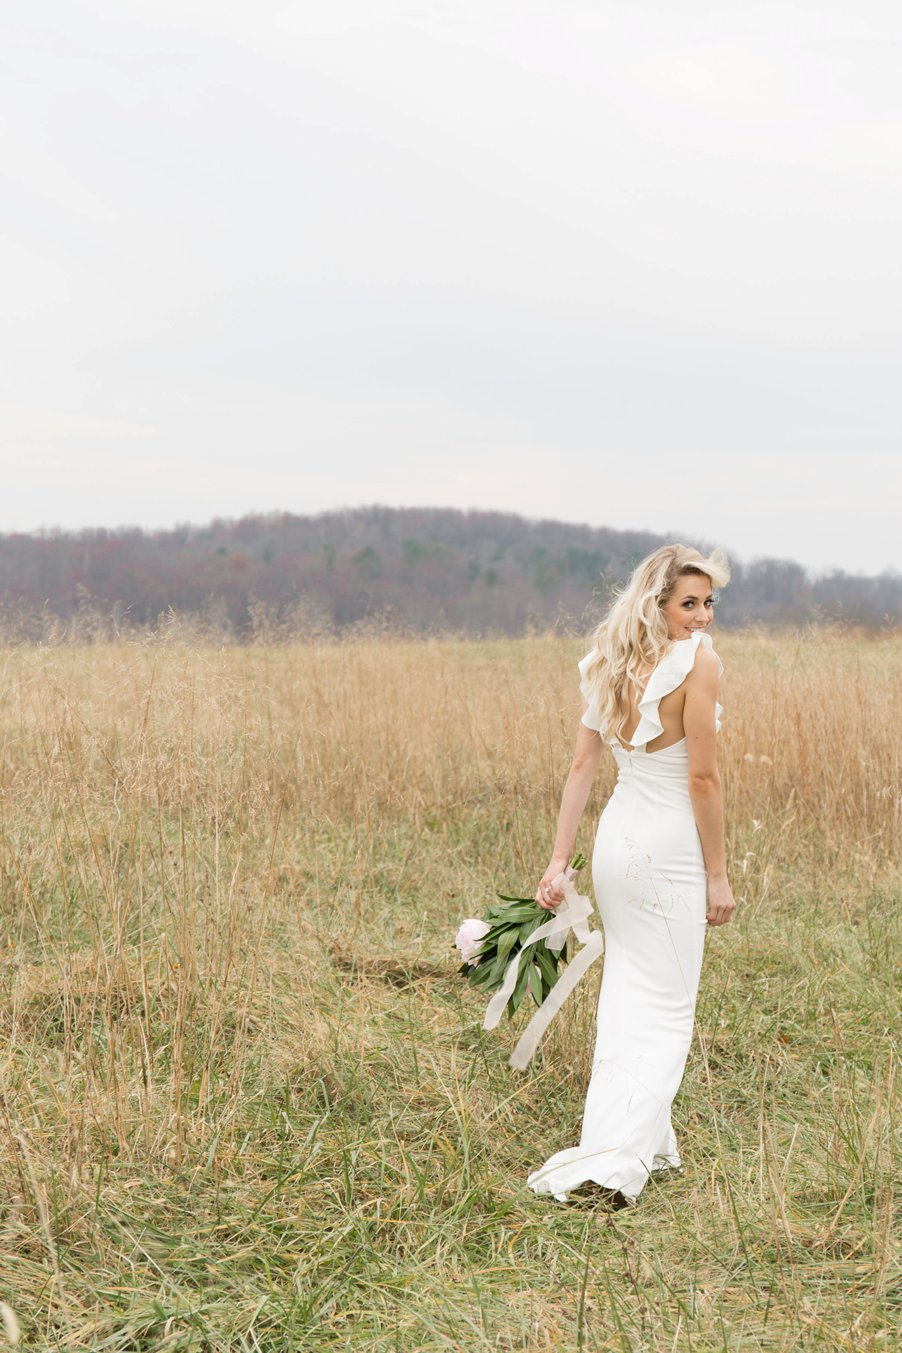 Woman in white wedding dress in a field